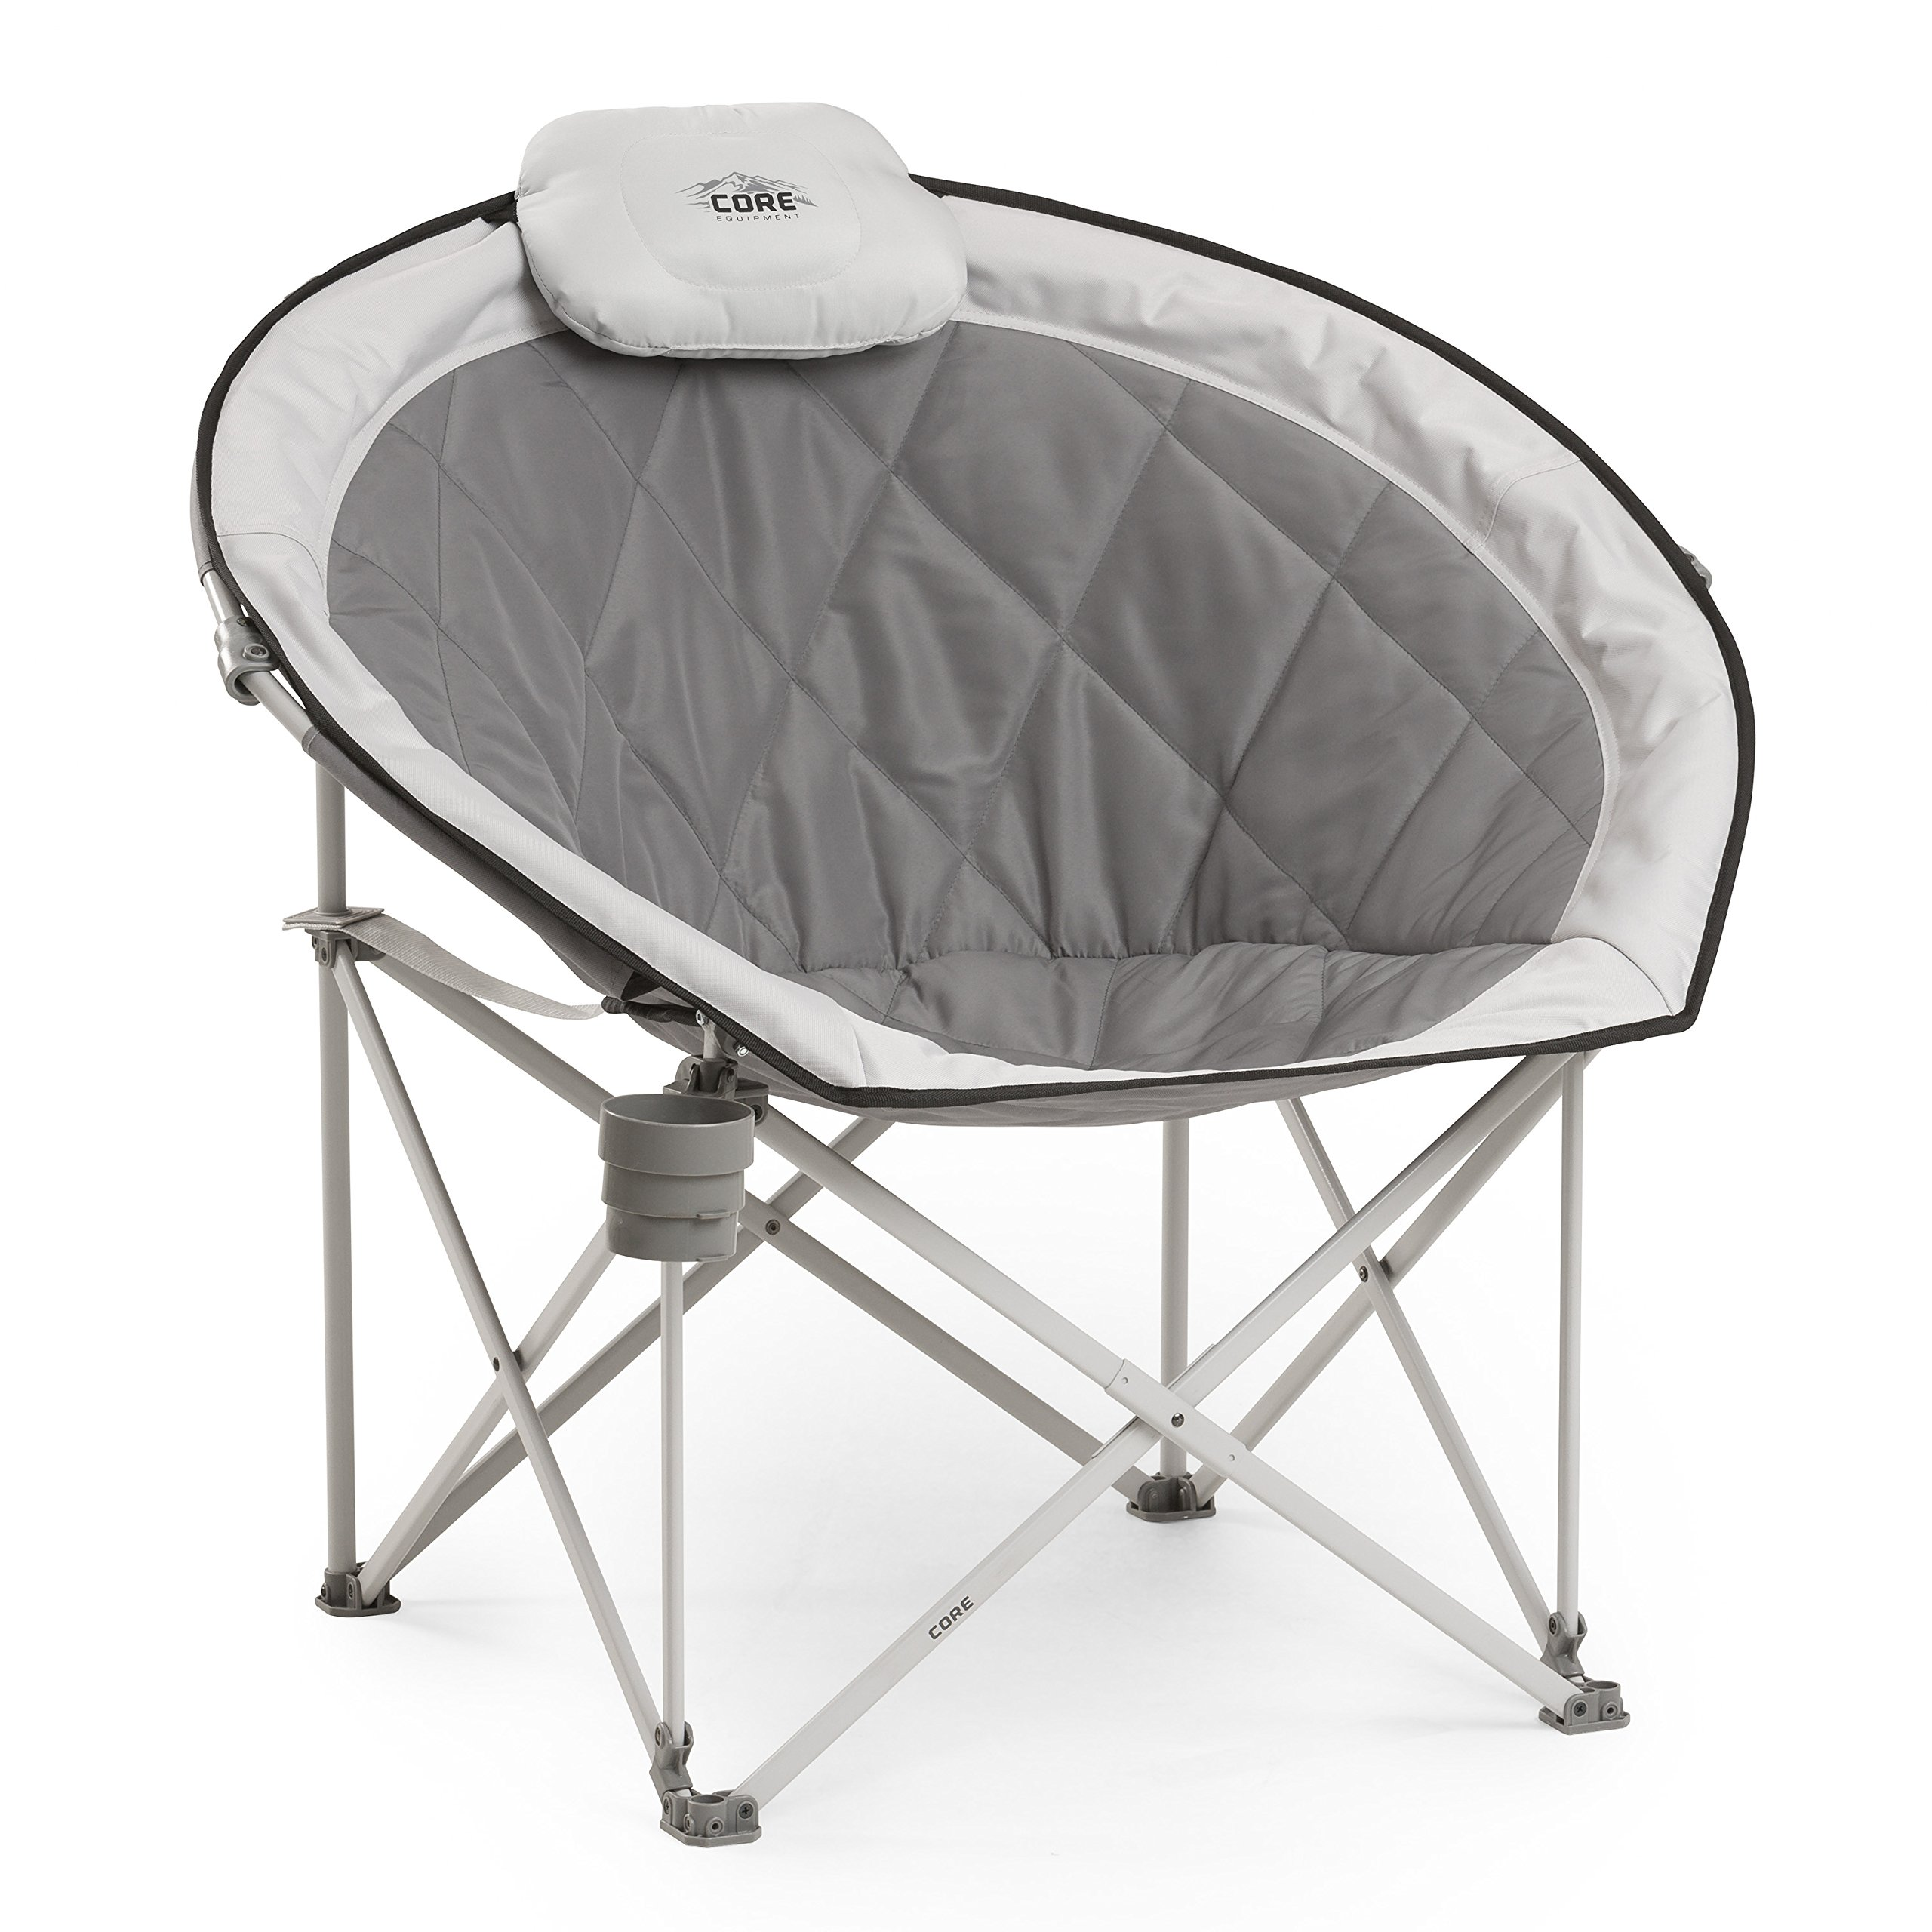 Bon Core Equipment Folding Oversized Padded Moon Round Saucer Chair With Carry  Bag, Gray